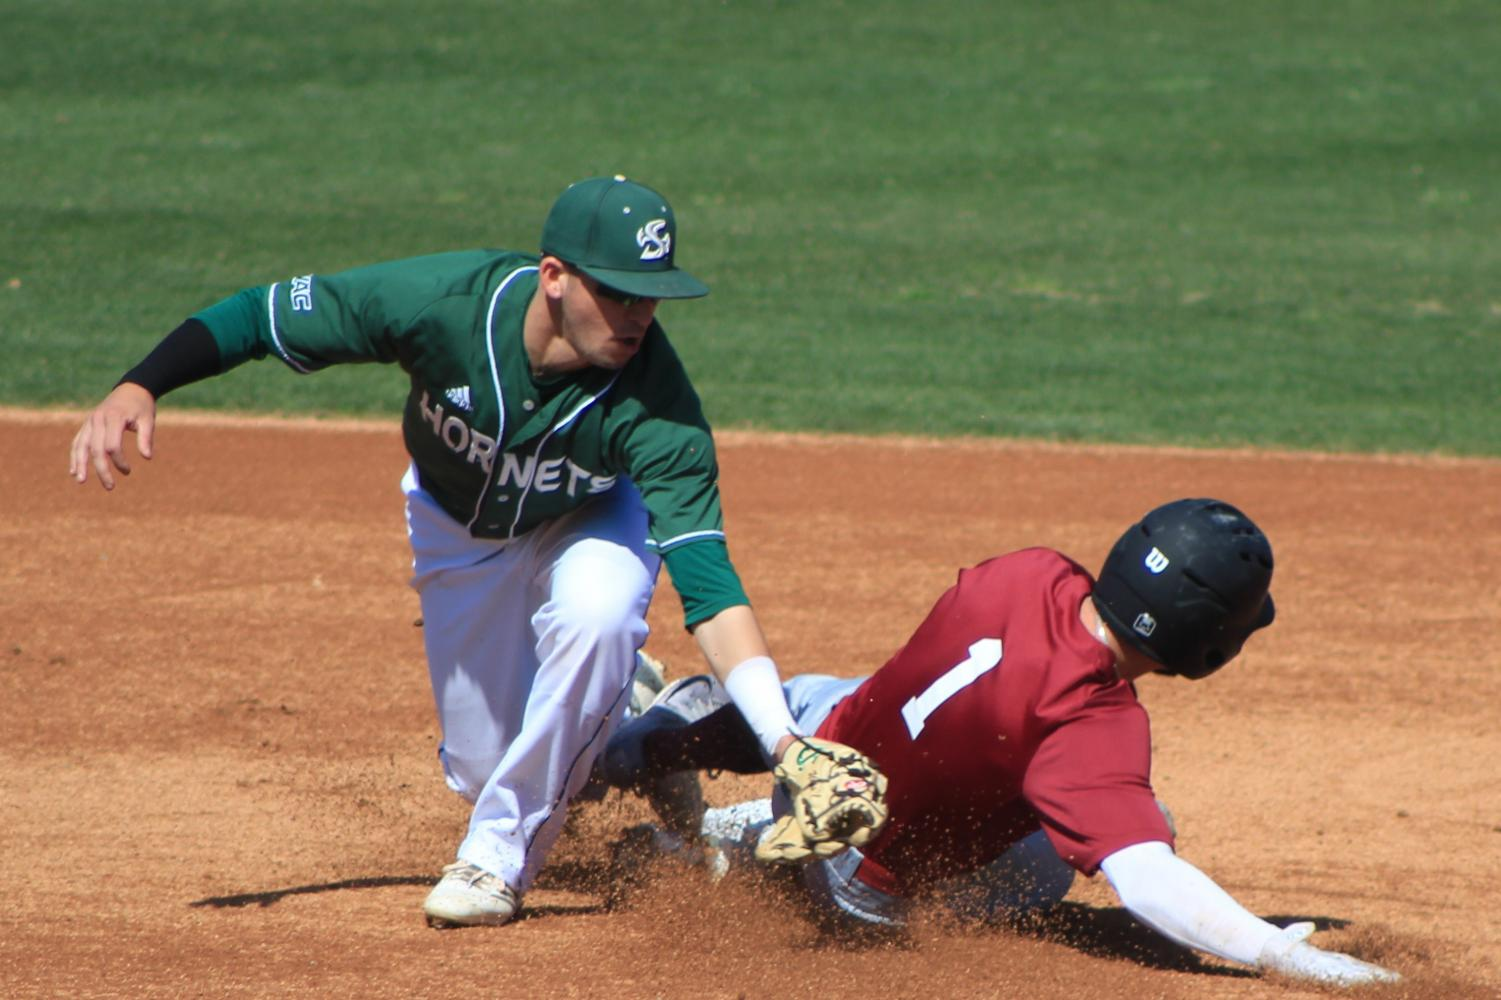 Sacramento State sophomore shortstop Josh Urps tags out Santa Clara University senior infielder Joe Becht during a steal attempt at second base at John Smith Field on Sunday, March 11, 2018. The Hornets defeated Santa Clara 4-1.